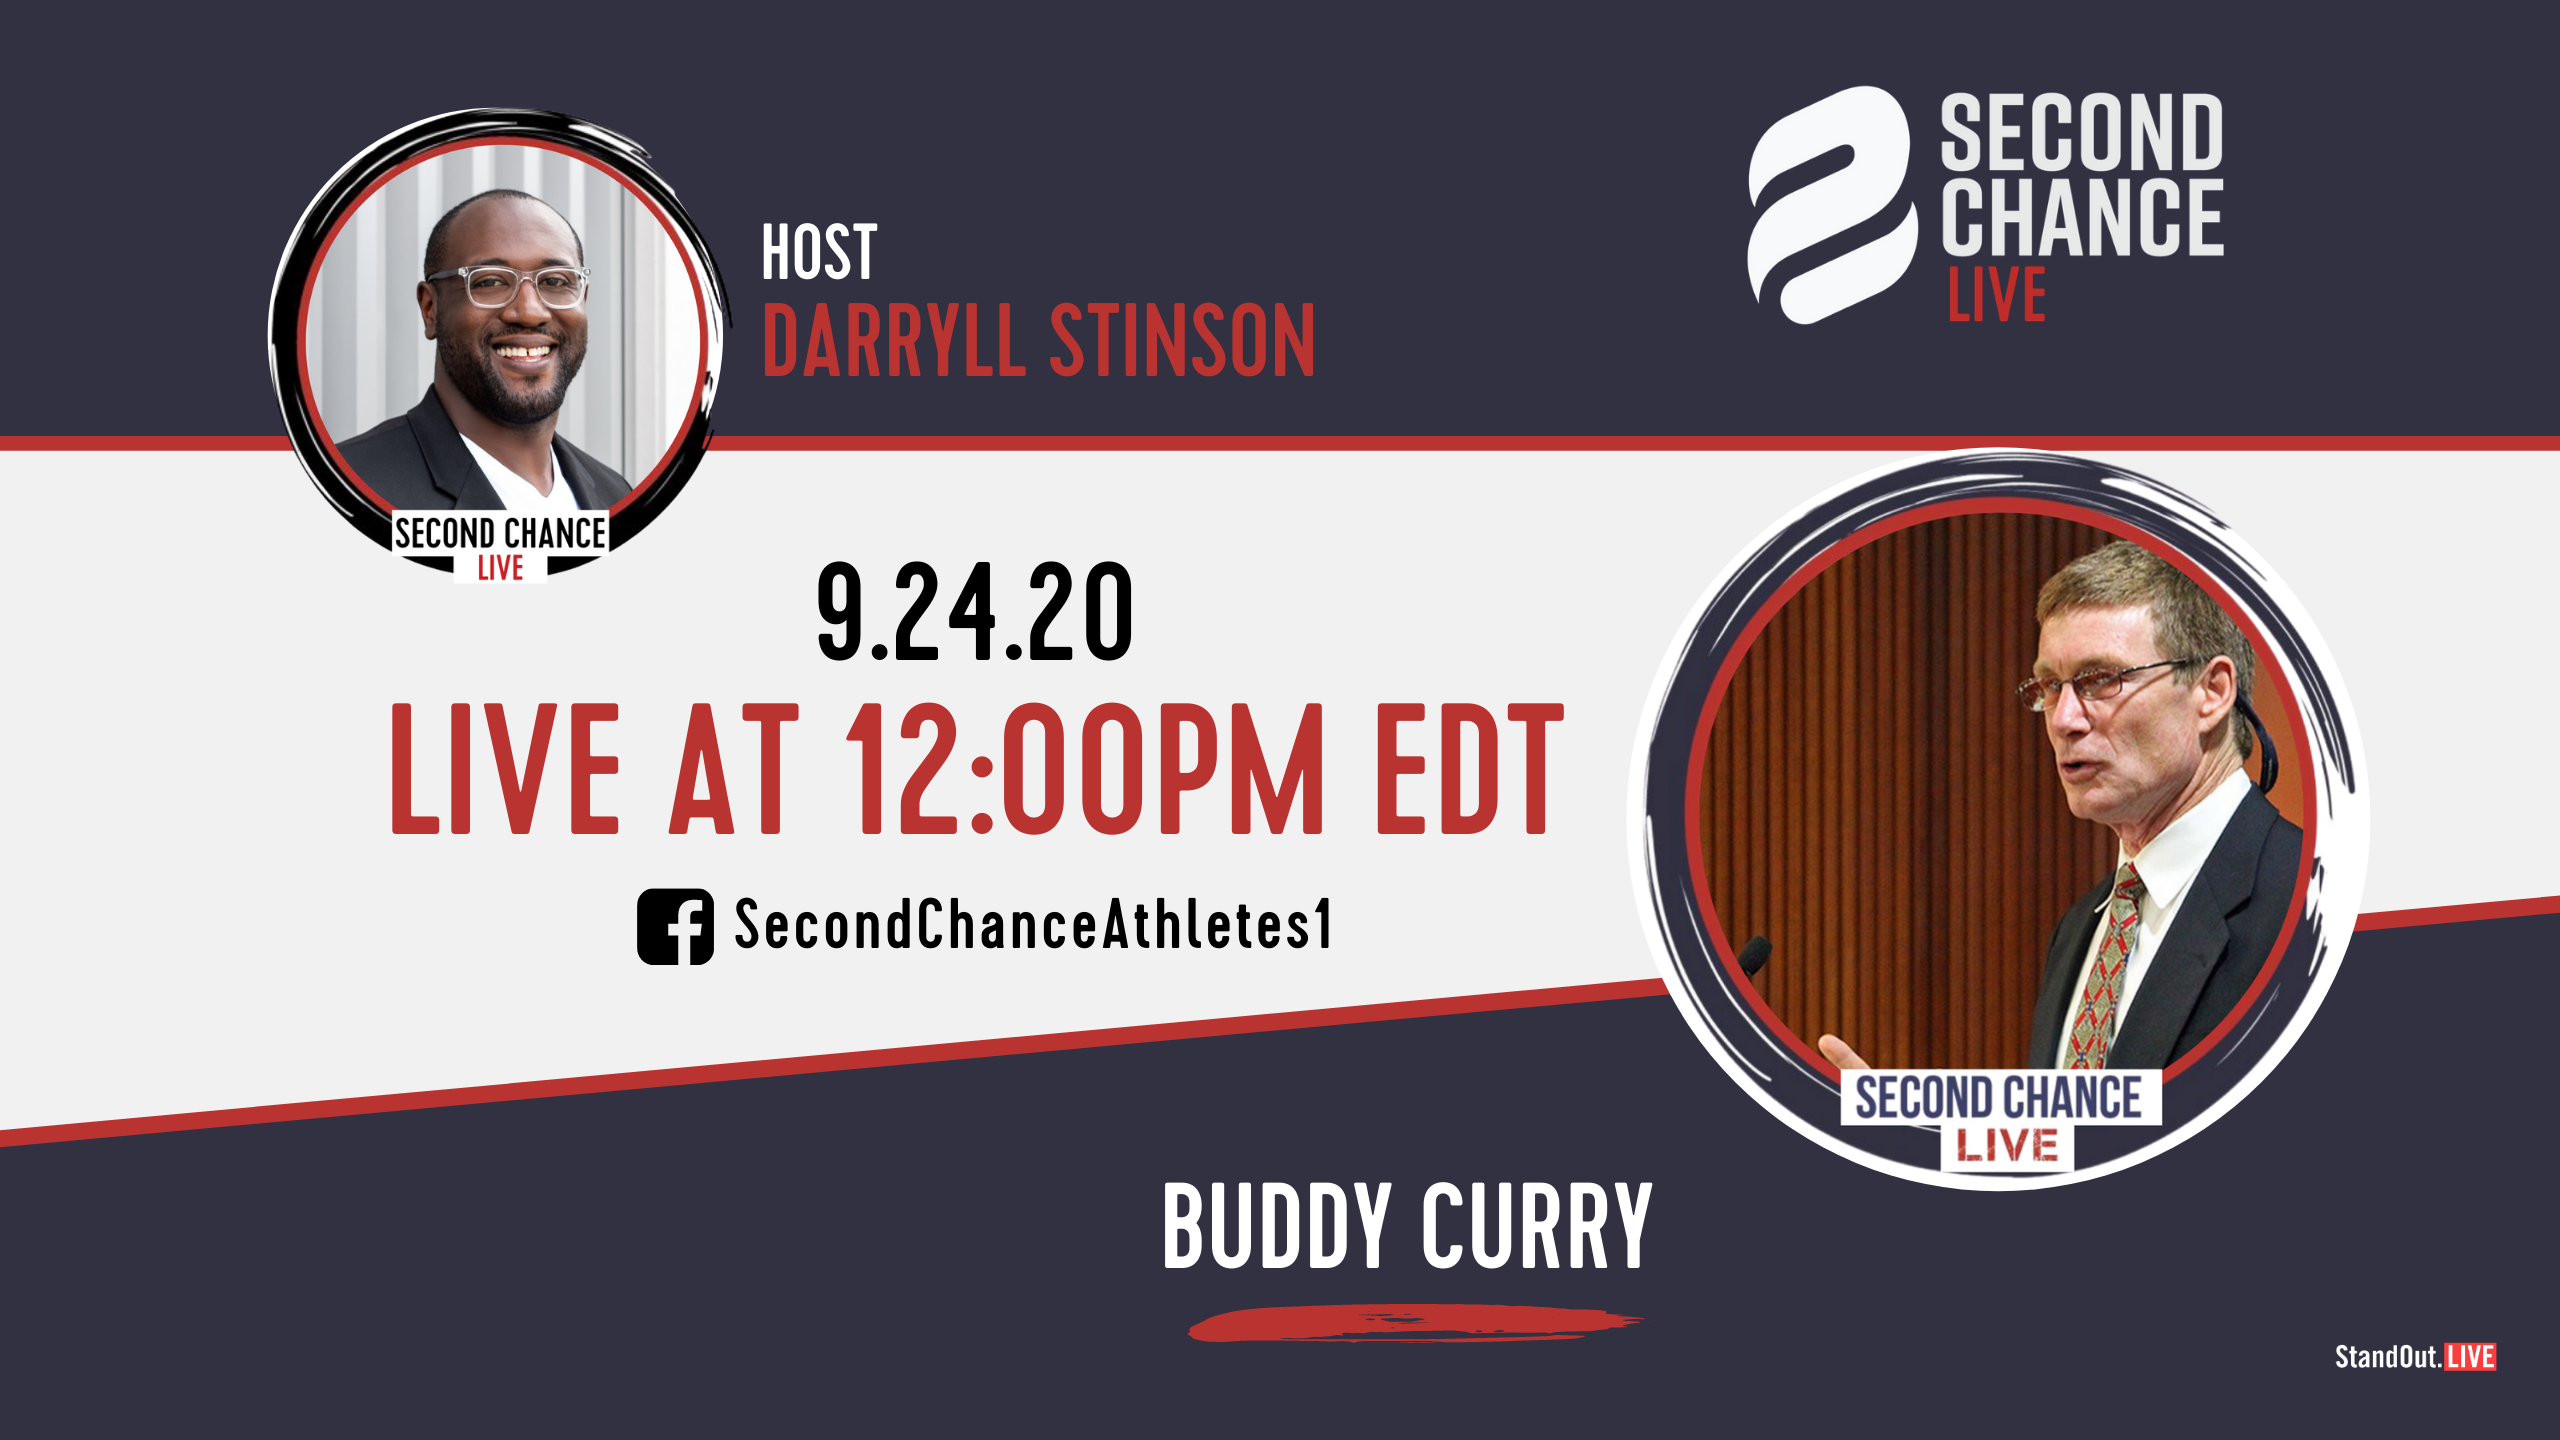 Second Chance LIVE -with Buddy Curry